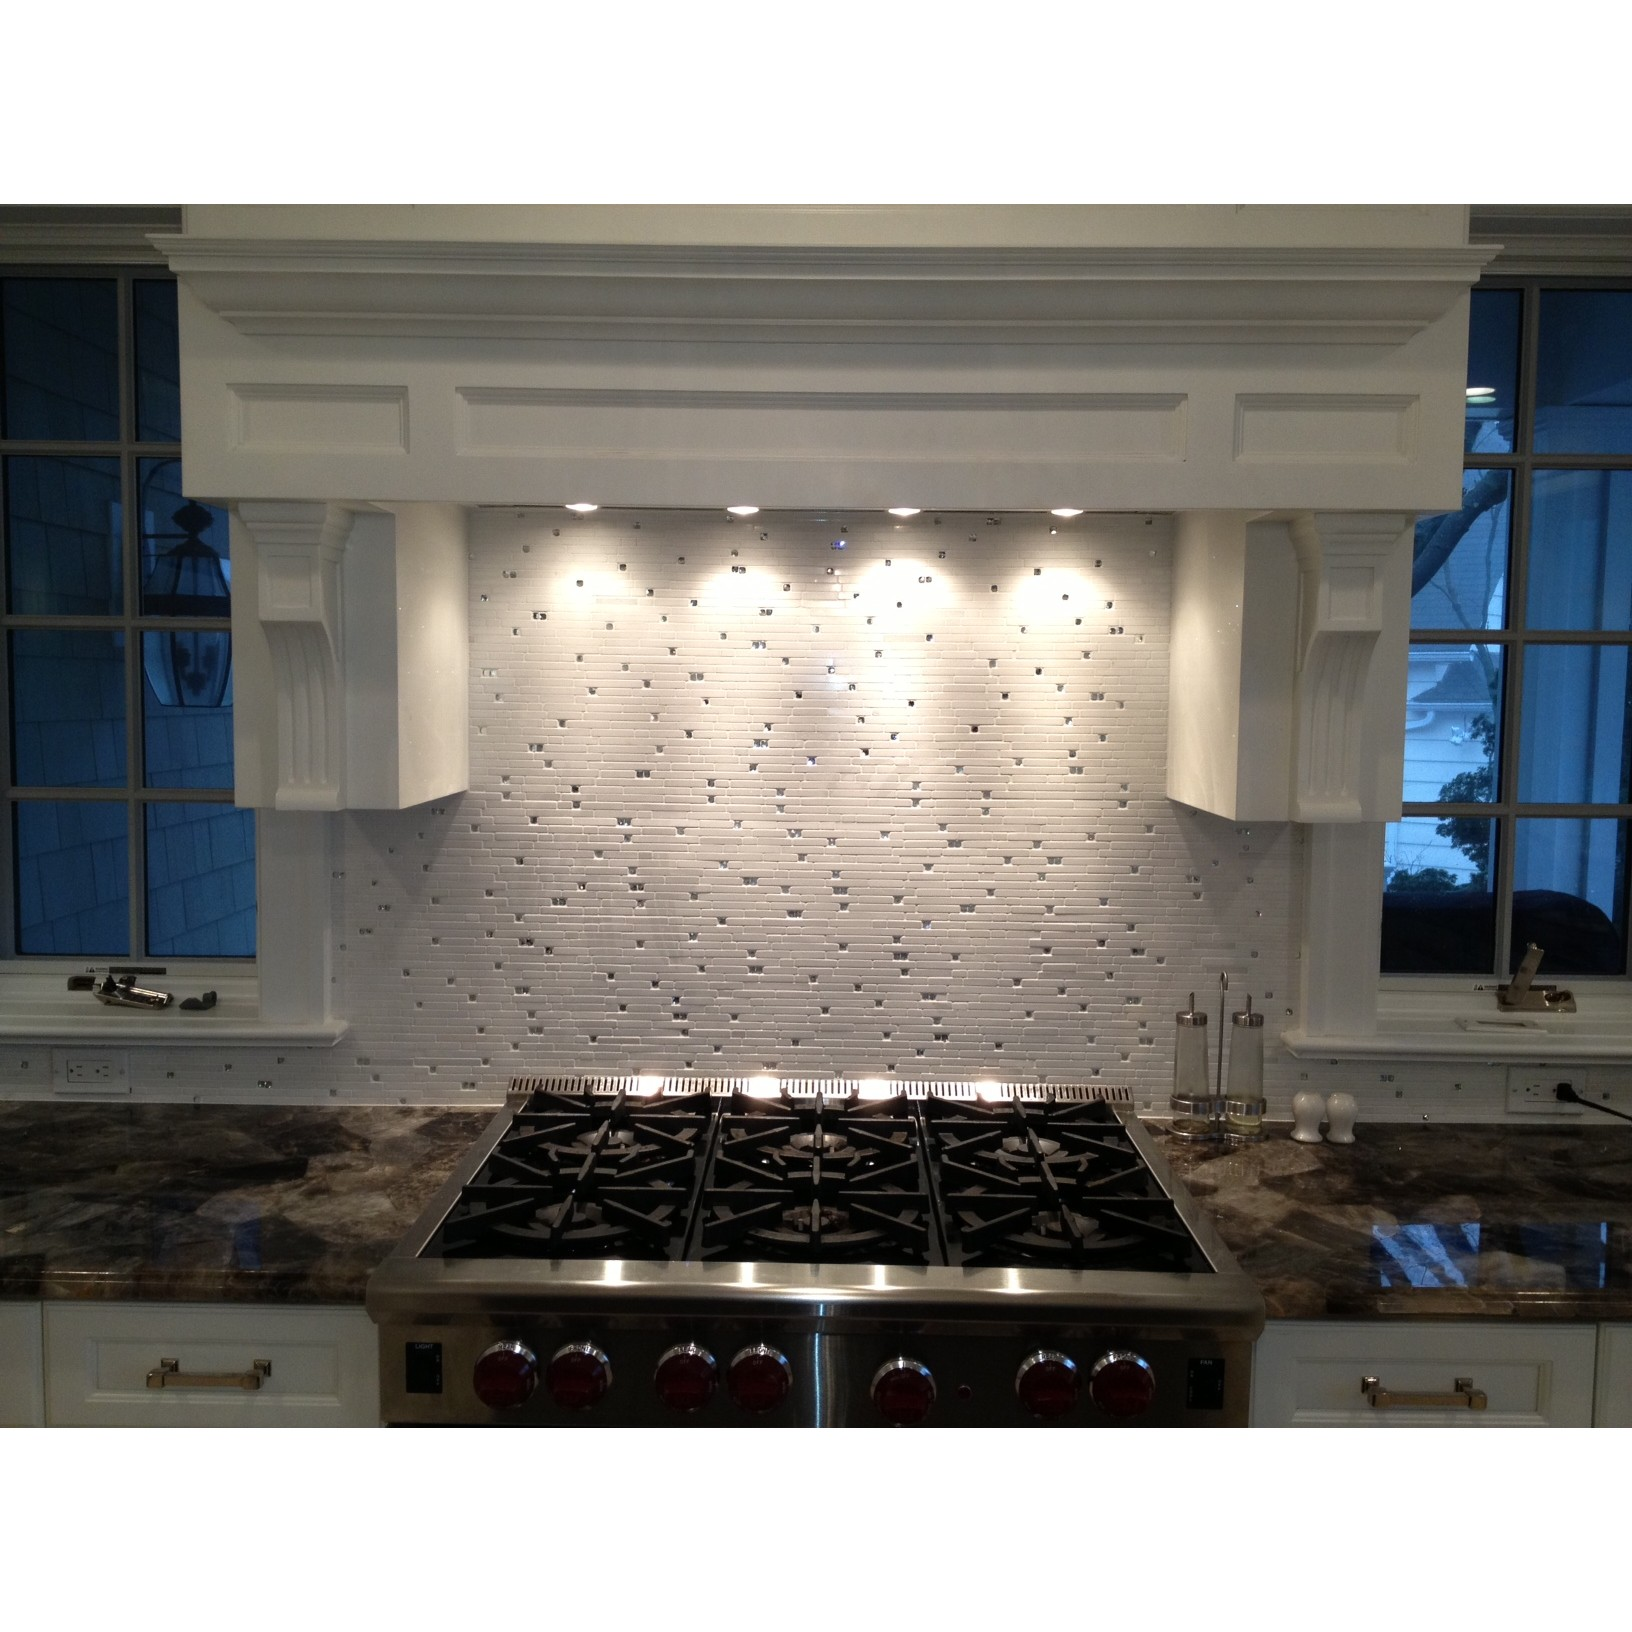 nchanted Grecian Marble and Glass Tile